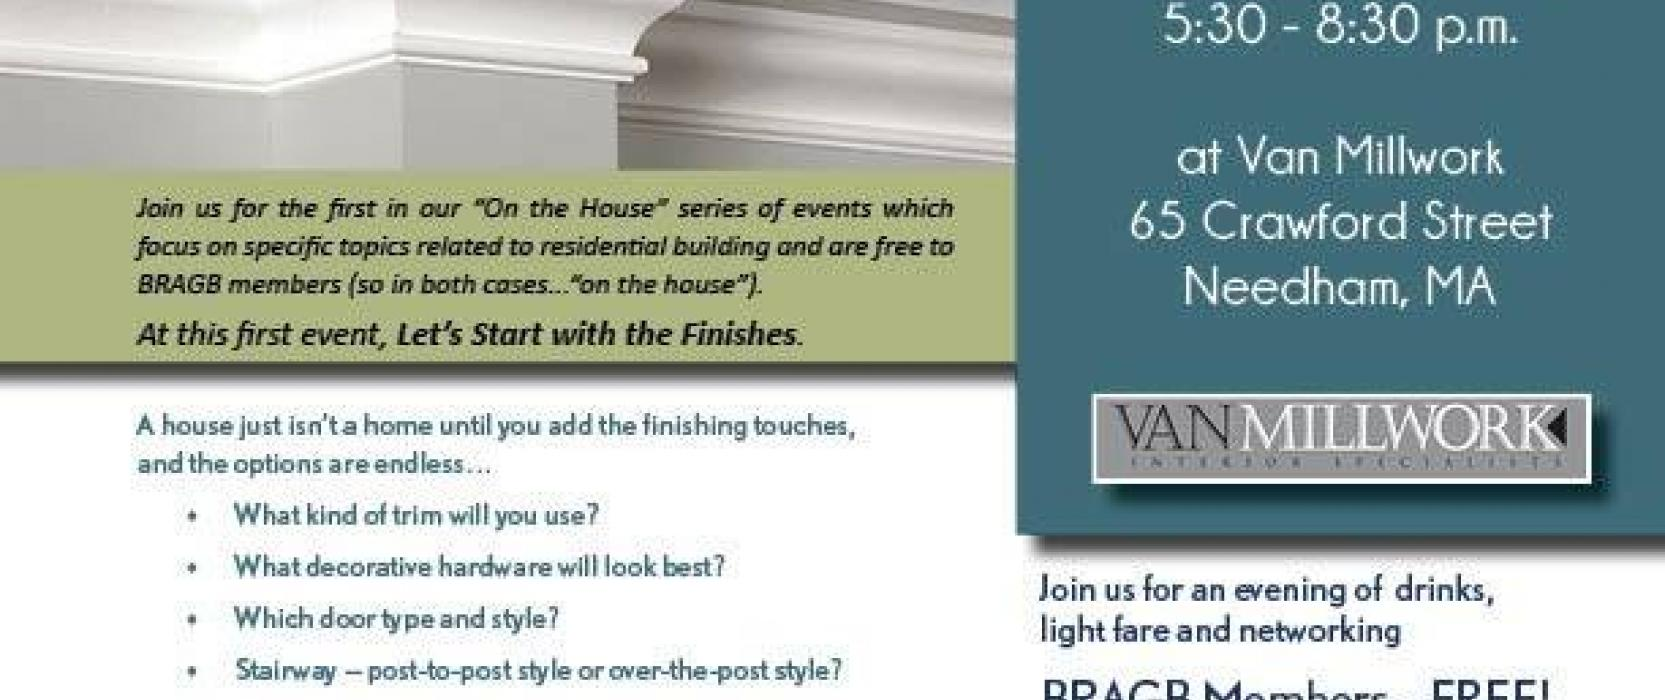 Van Millwork Hosts Networking Event